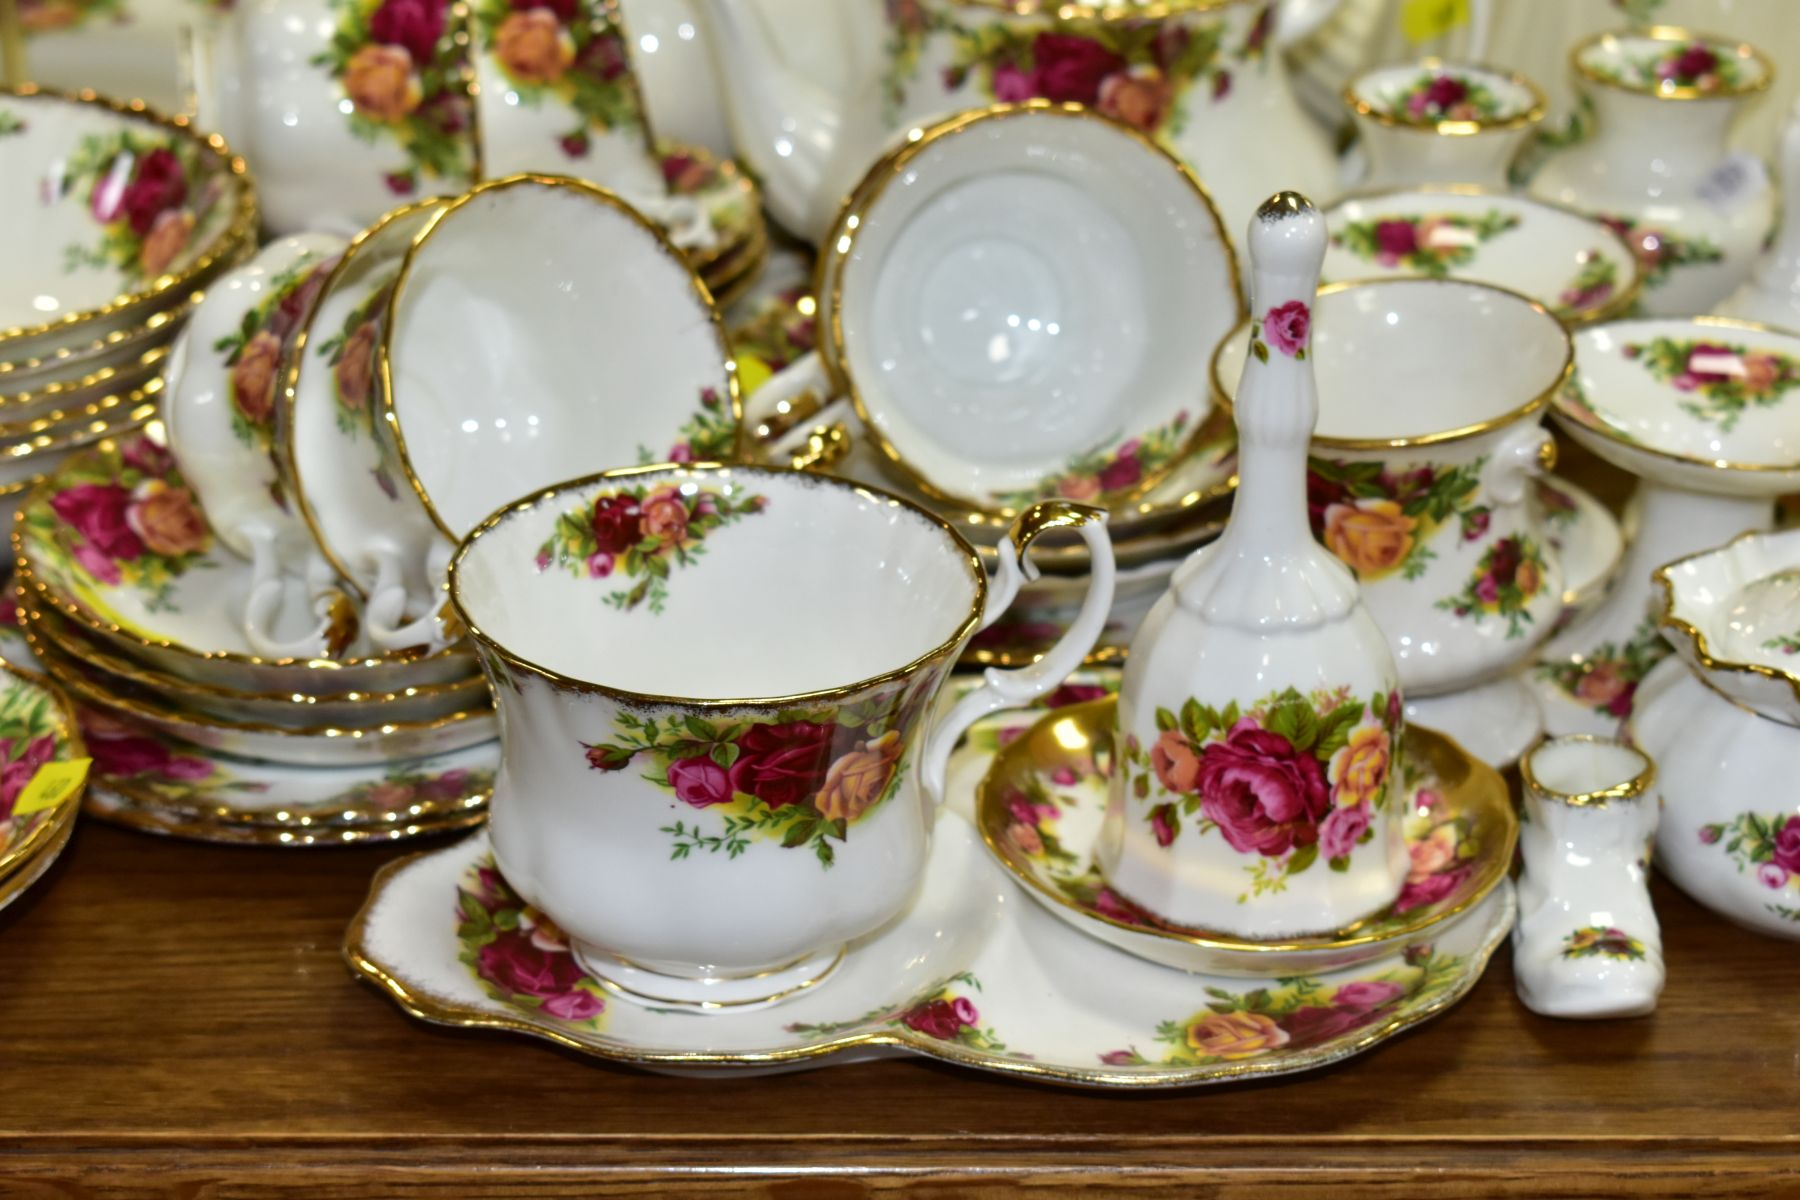 ROYAL ALBERT 'OLD COUNTRY ROSES' DINNER/TEA WARES, NOVELTY TEAPOTS AND TRINKETS, comprising two - Image 8 of 12